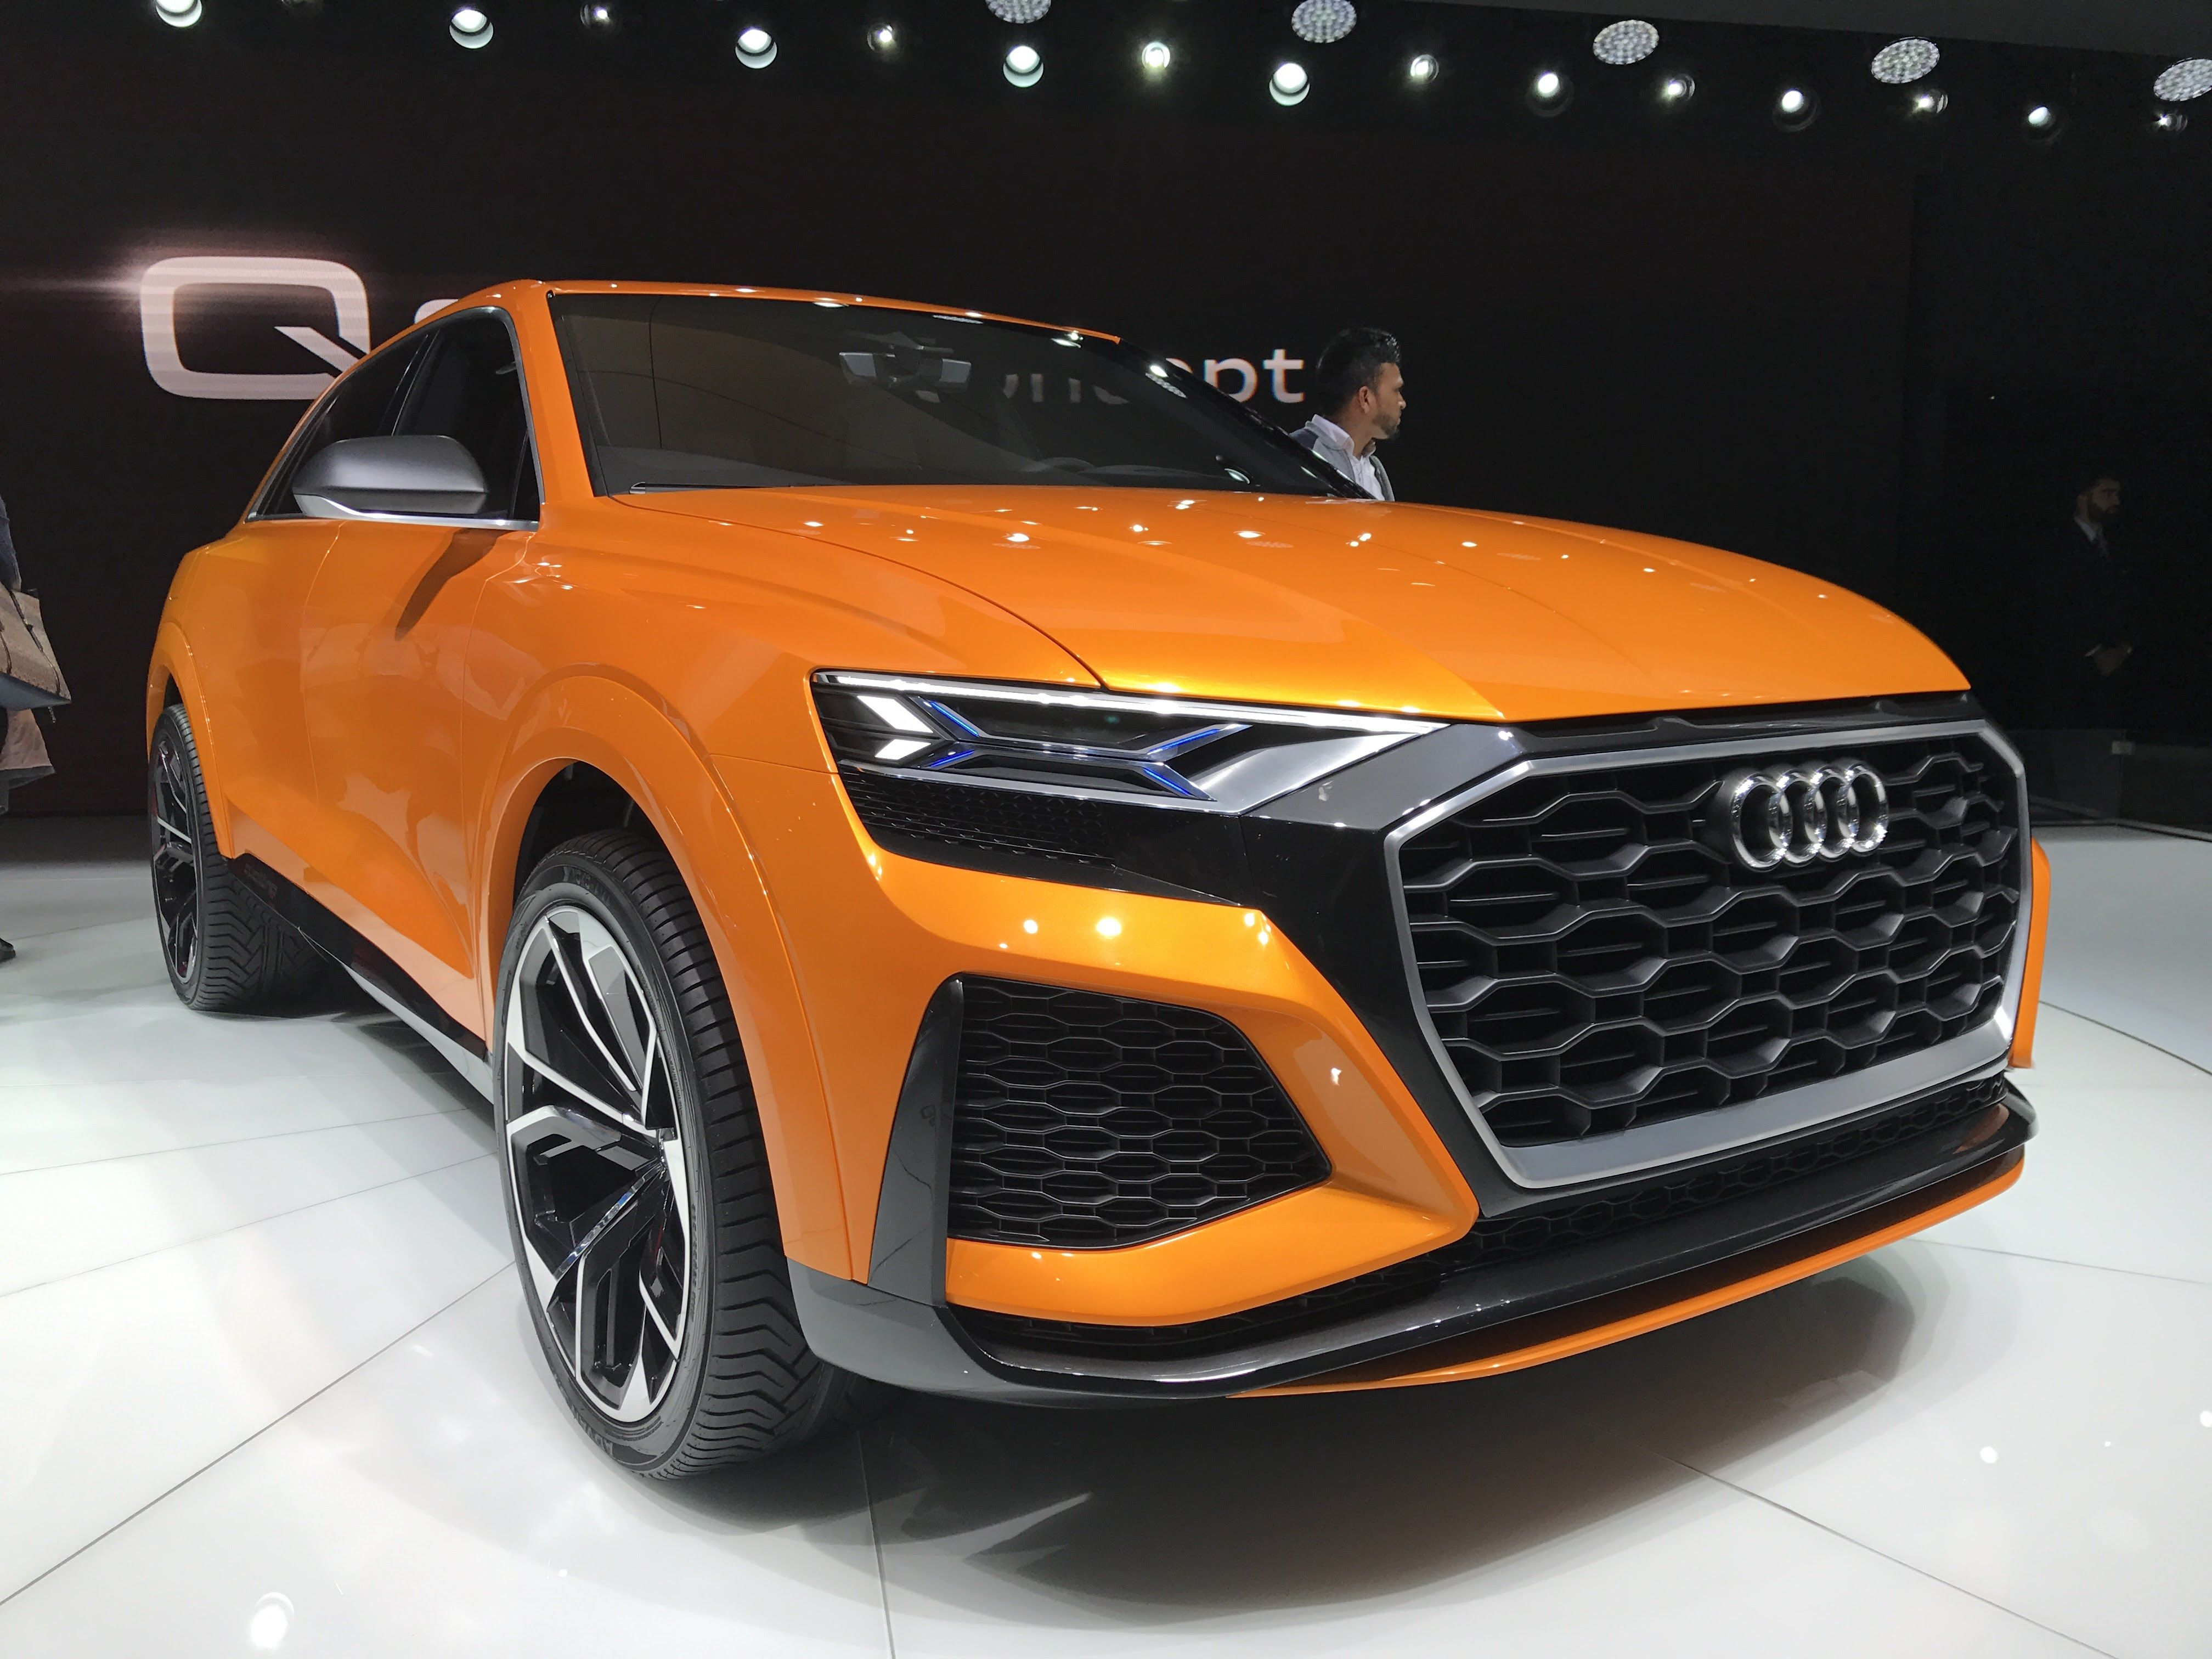 come lease great tiptronic drive audi pin criswell quattro rates the nj